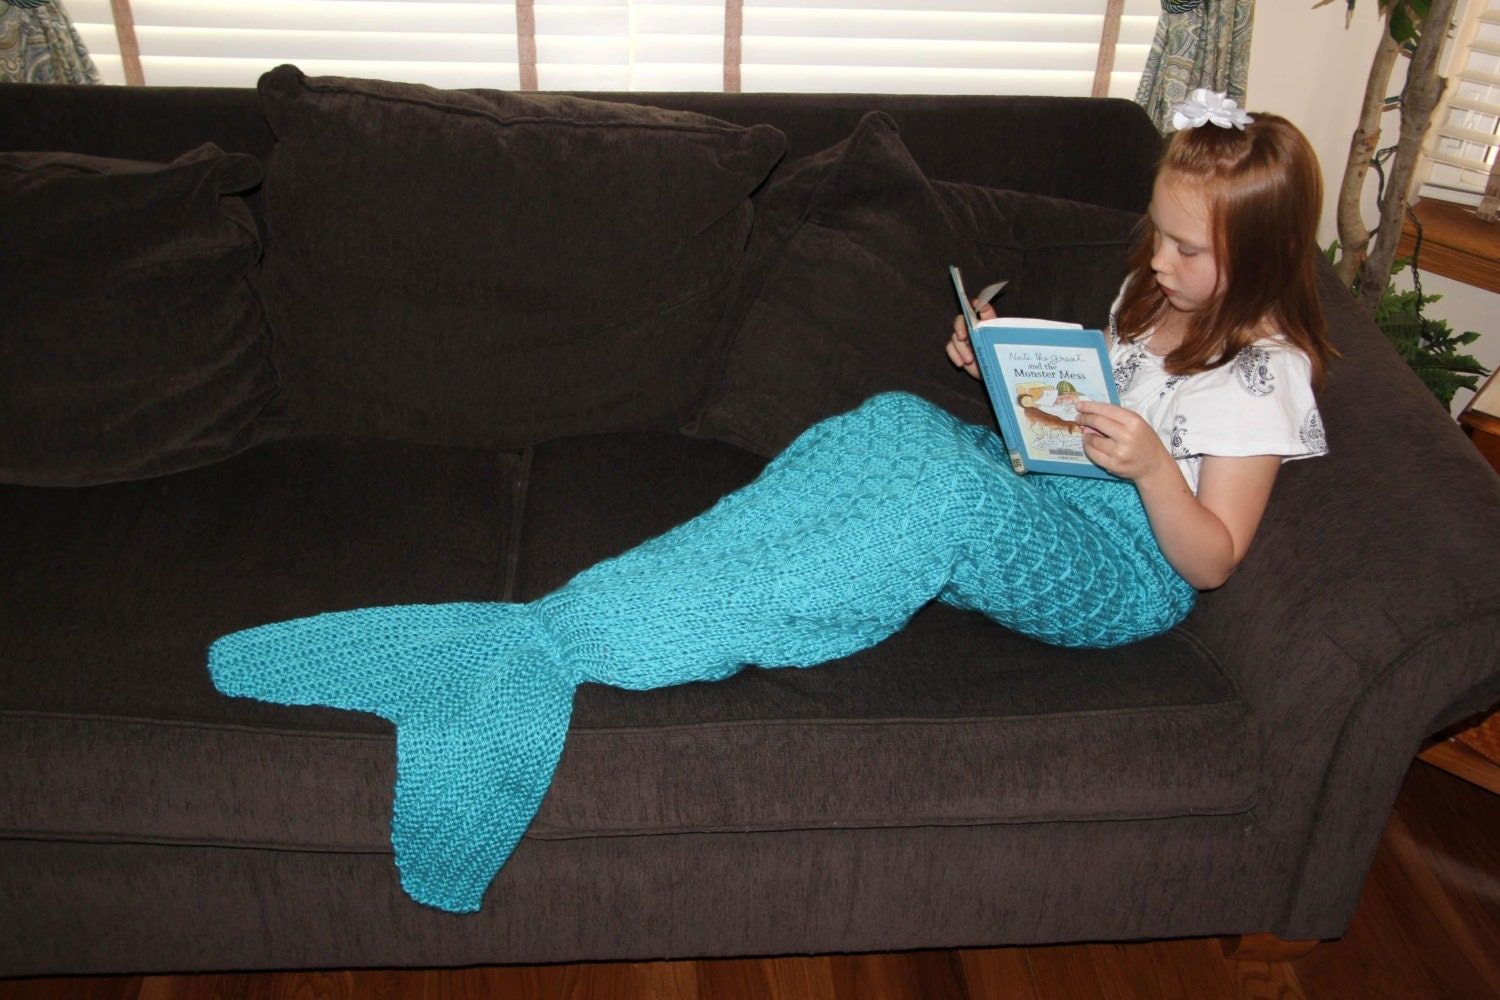 Mermaid Tail Lapghan Blanket Knitting Pattern for Children